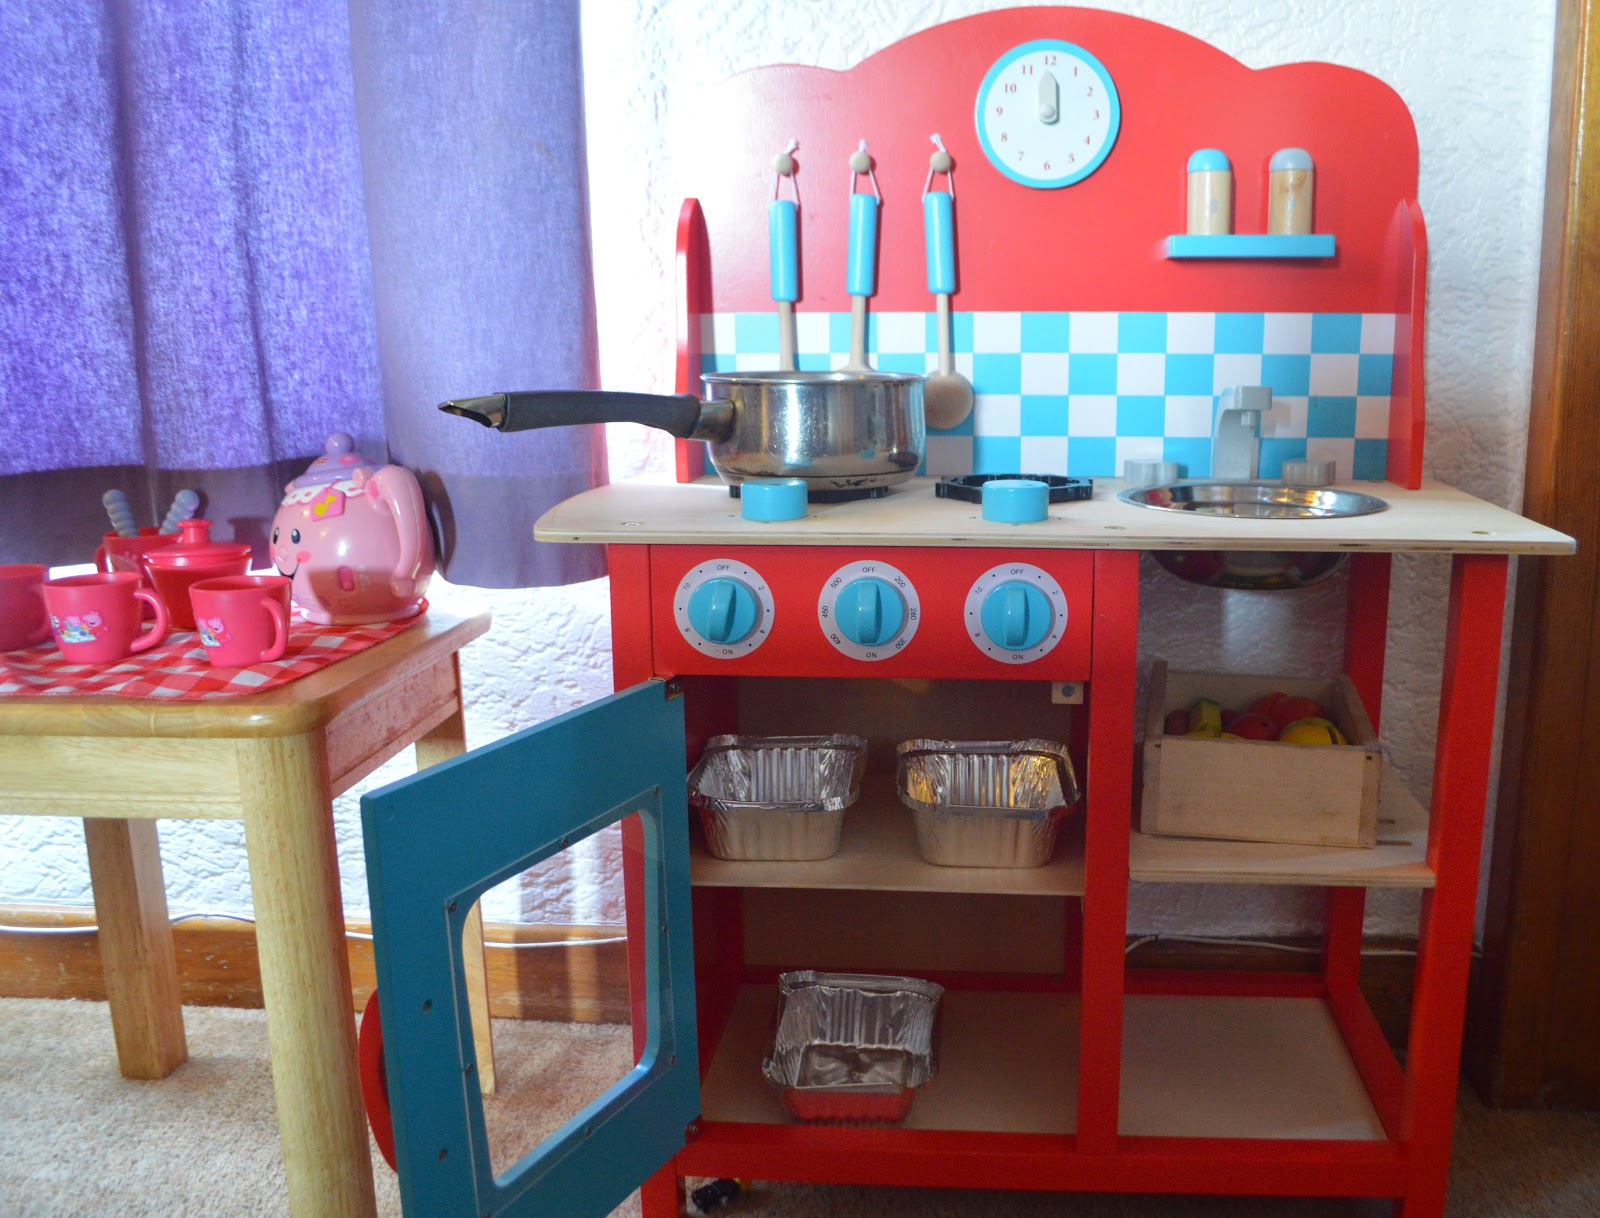 Oven Hob Keeps Clicking Pretend Play Christmas Ideas Gltc Cavendish Play Kitchen